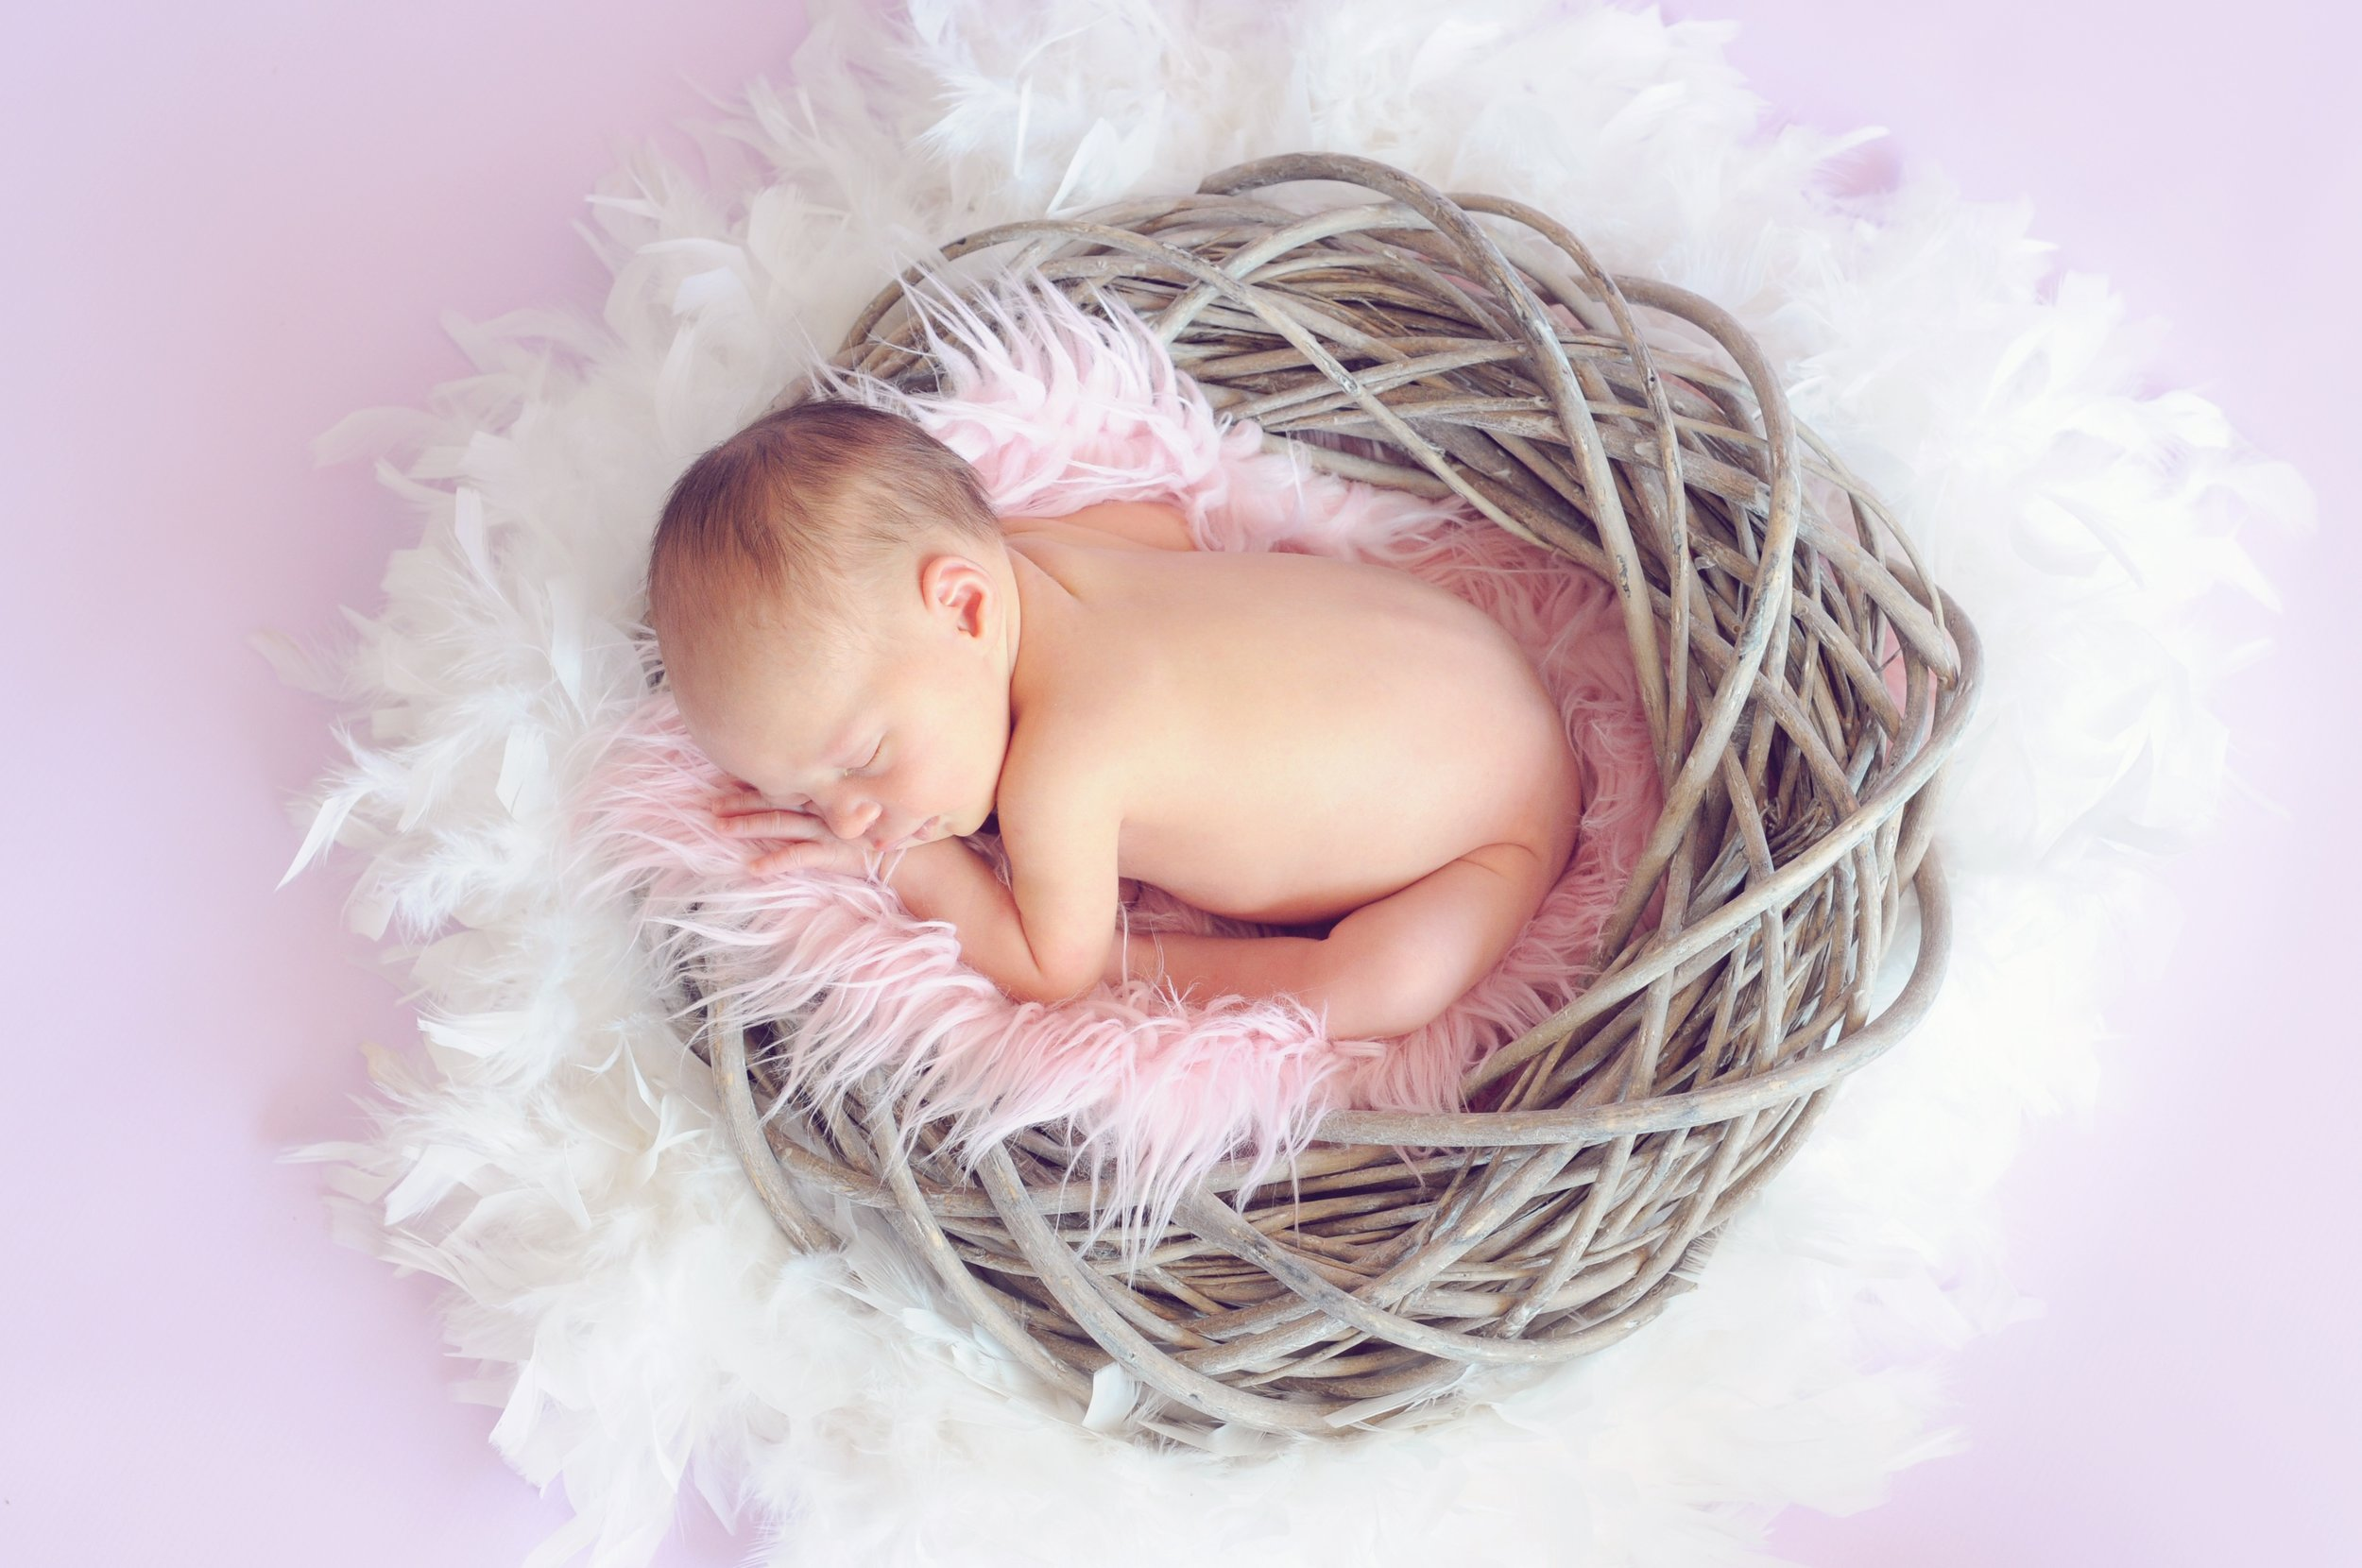 Is it bad that I want to have a baby for the newborn photos?! **This baby is a stock image, I'm not a creeper.**